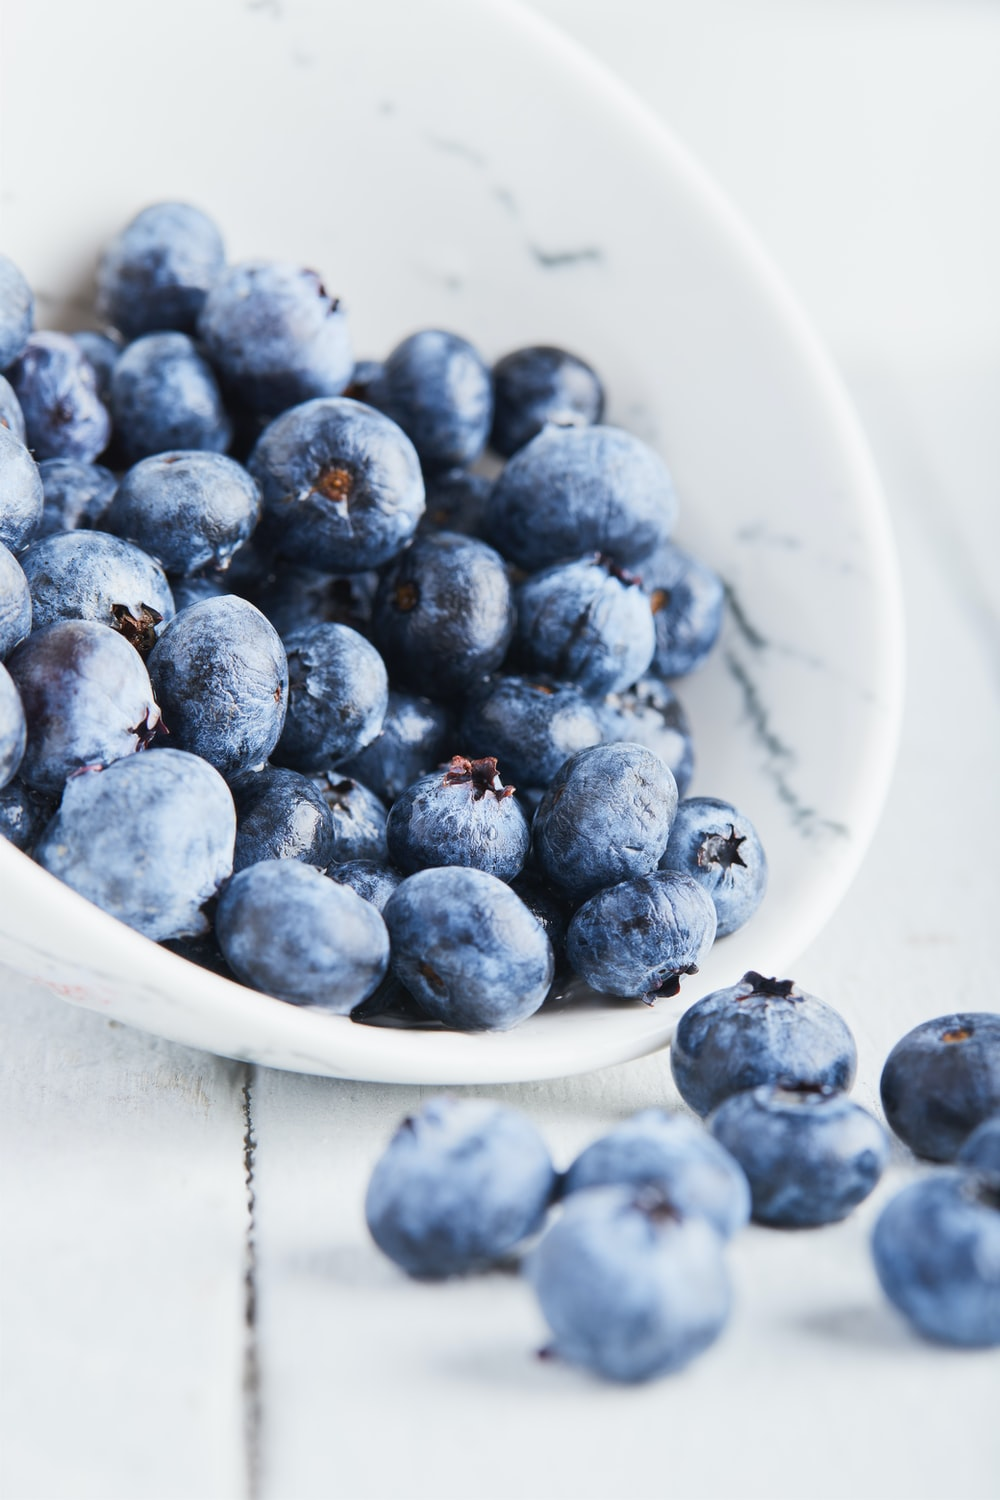 selective focus photography of blueberries in bowl